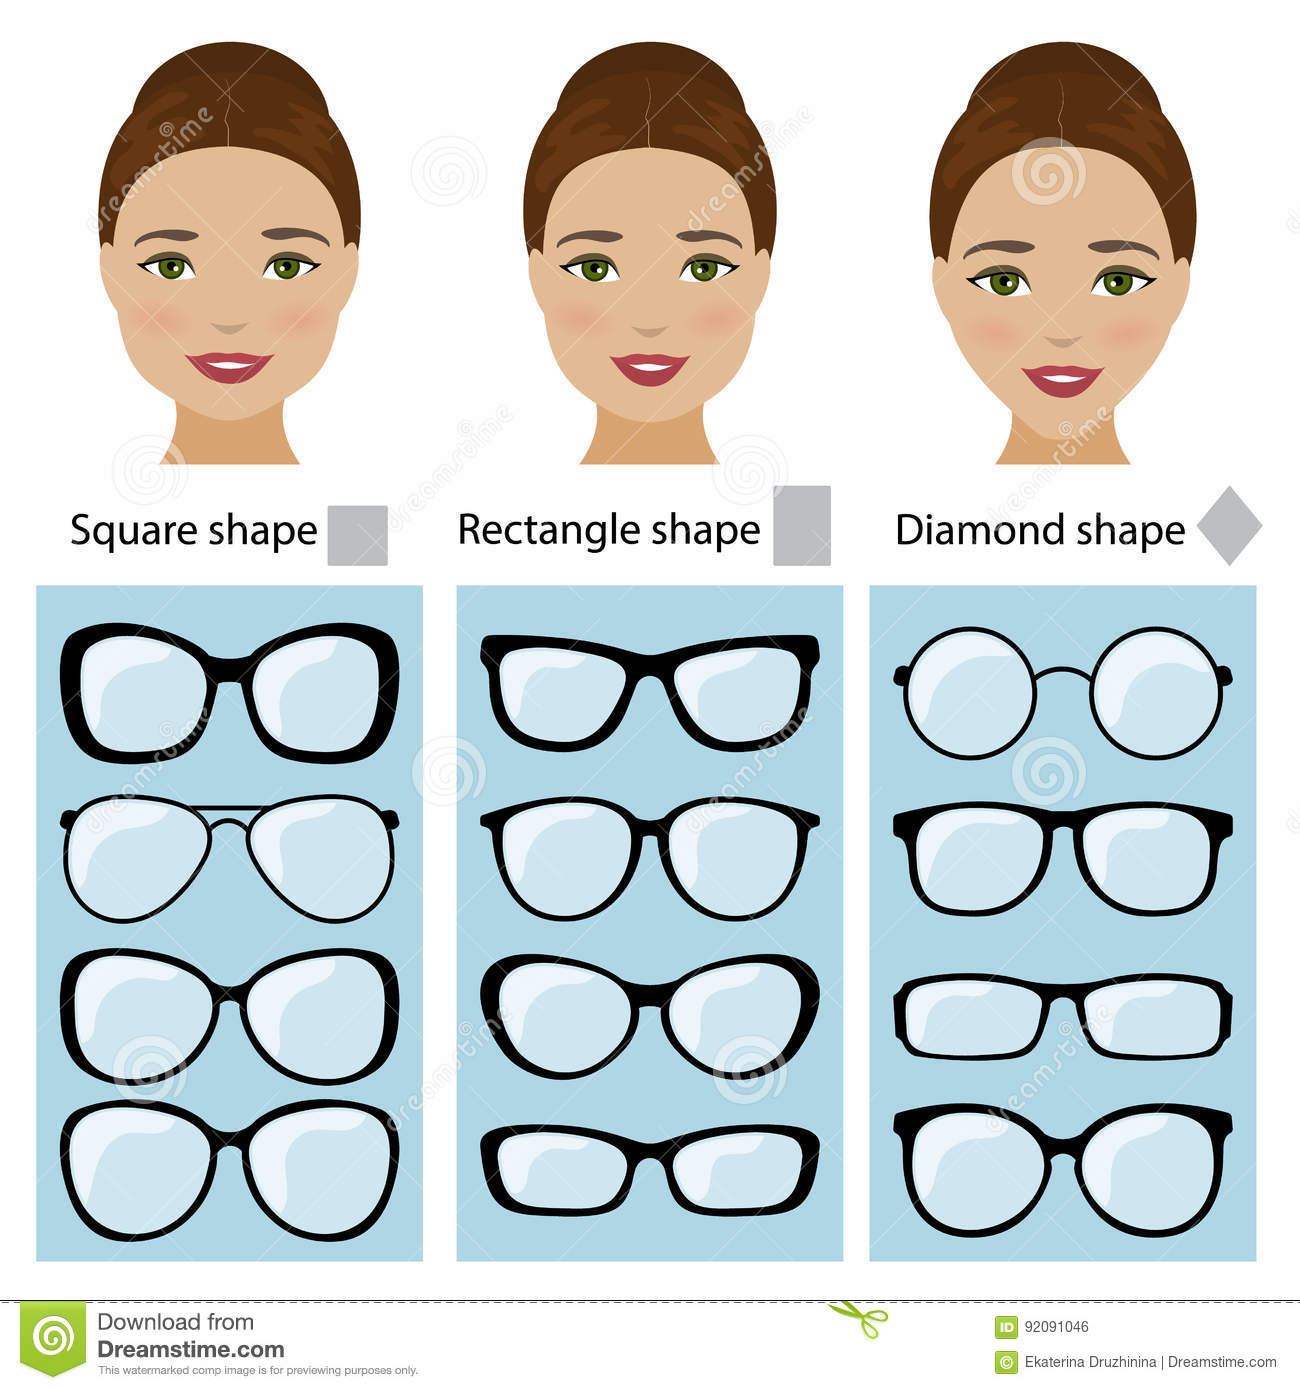 33c2292a6c11 Spectacle frames shapes for different types of women face shapes. Face types  as square